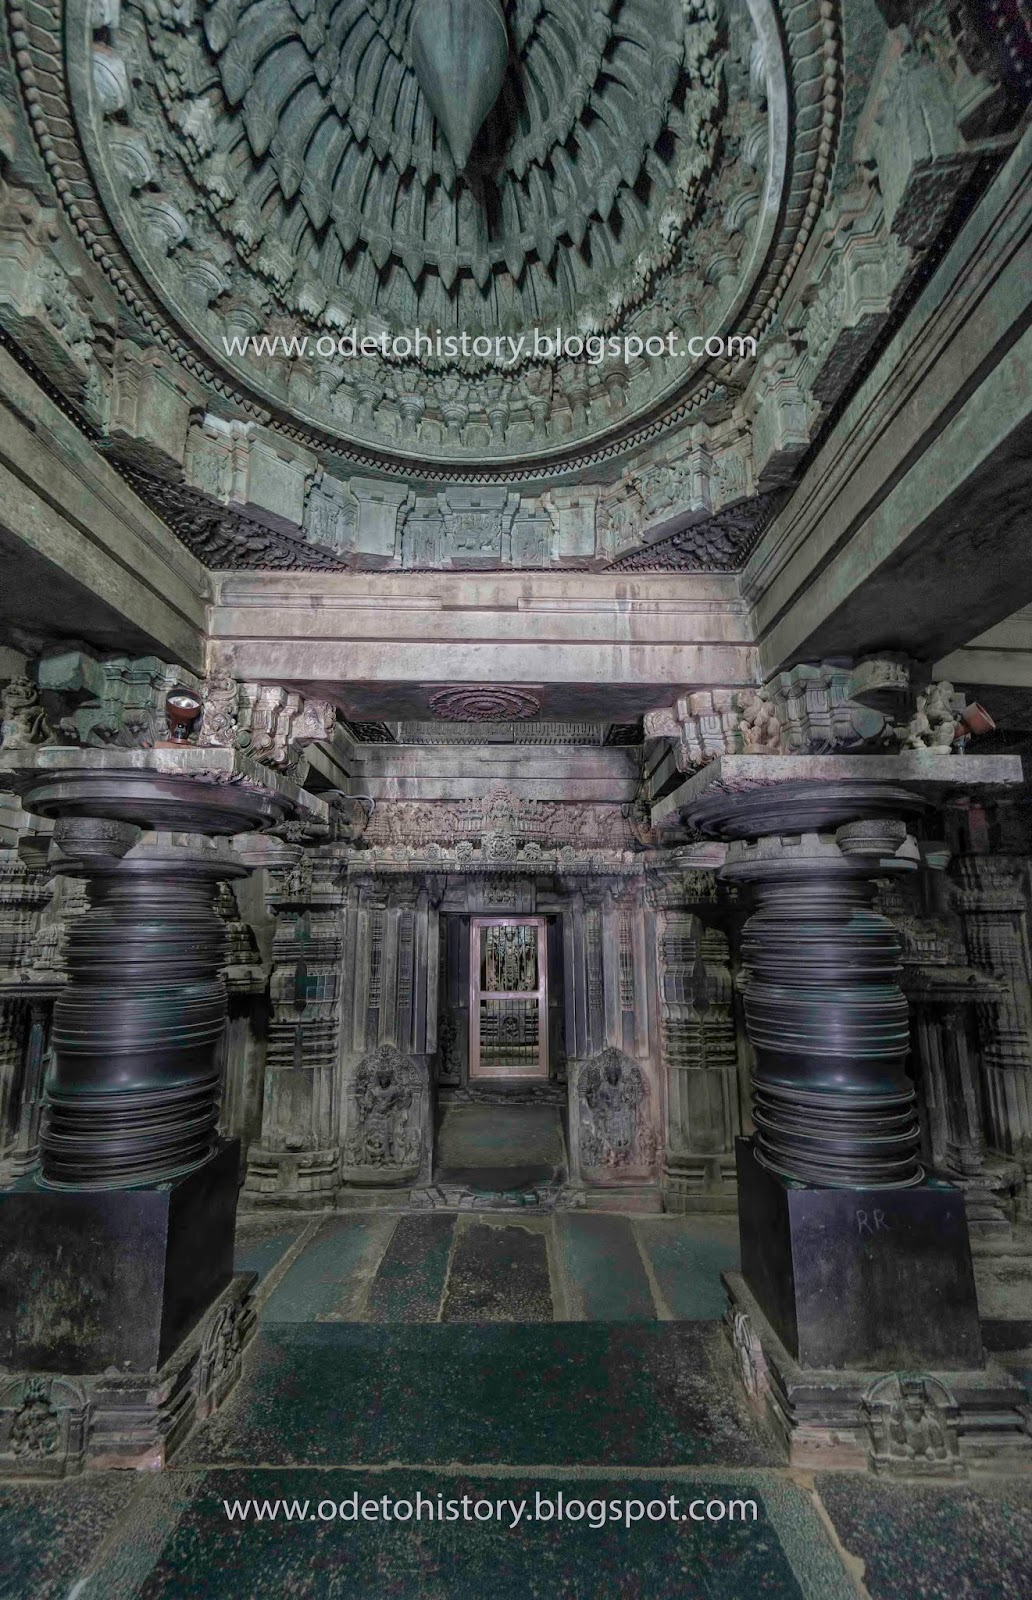 An ode to history a photo montage vijaydurg fort - History Of Somnathpura Temple Is Very Closely Related To The History Of Hoysala Kingdom In The Southern Province Of India Built Almost At The Fag End Of